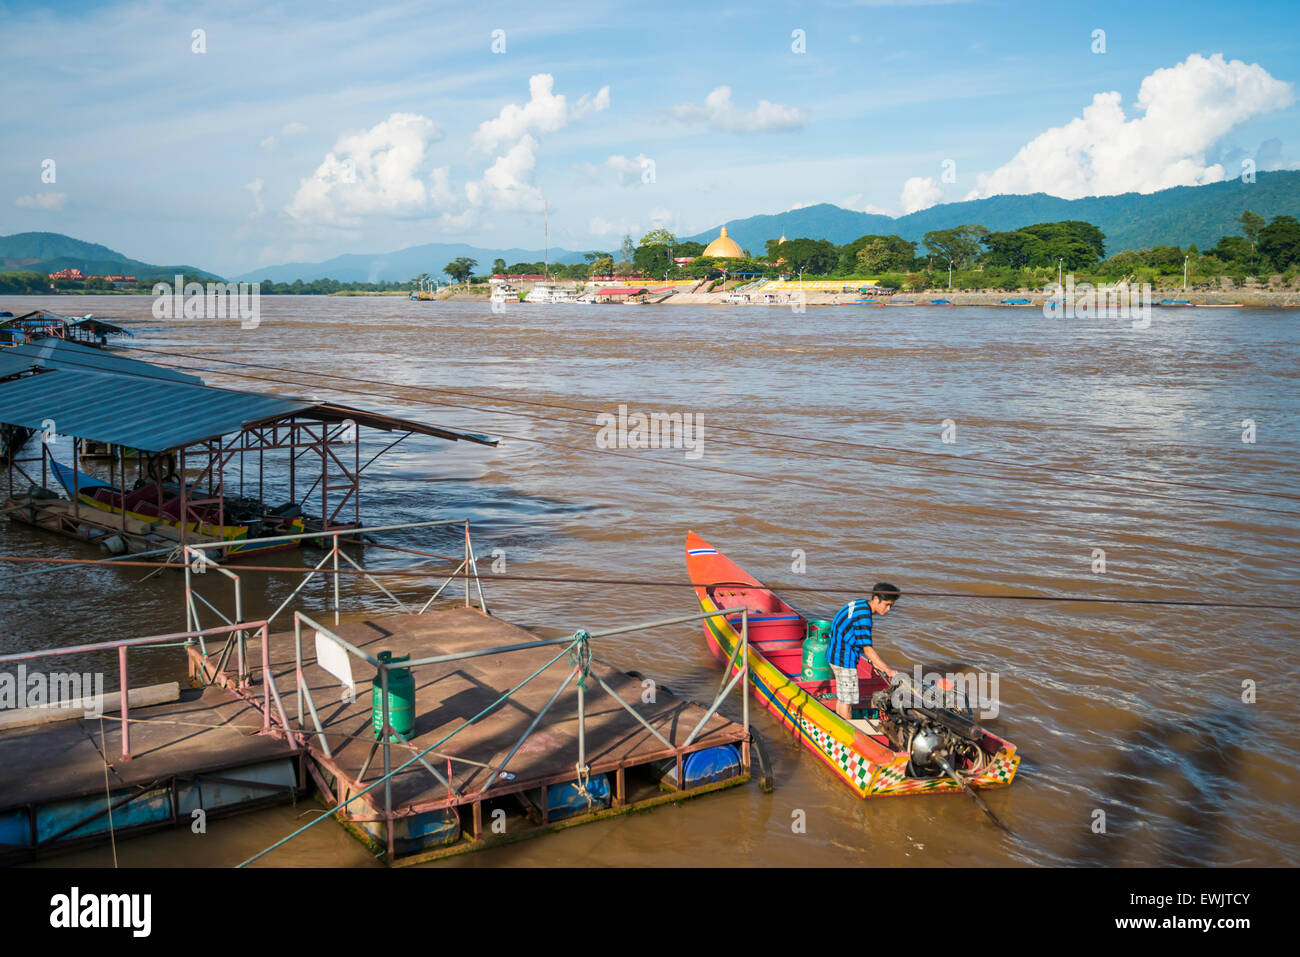 Golden Triangle River Boat with a View of Laos - Stock Image